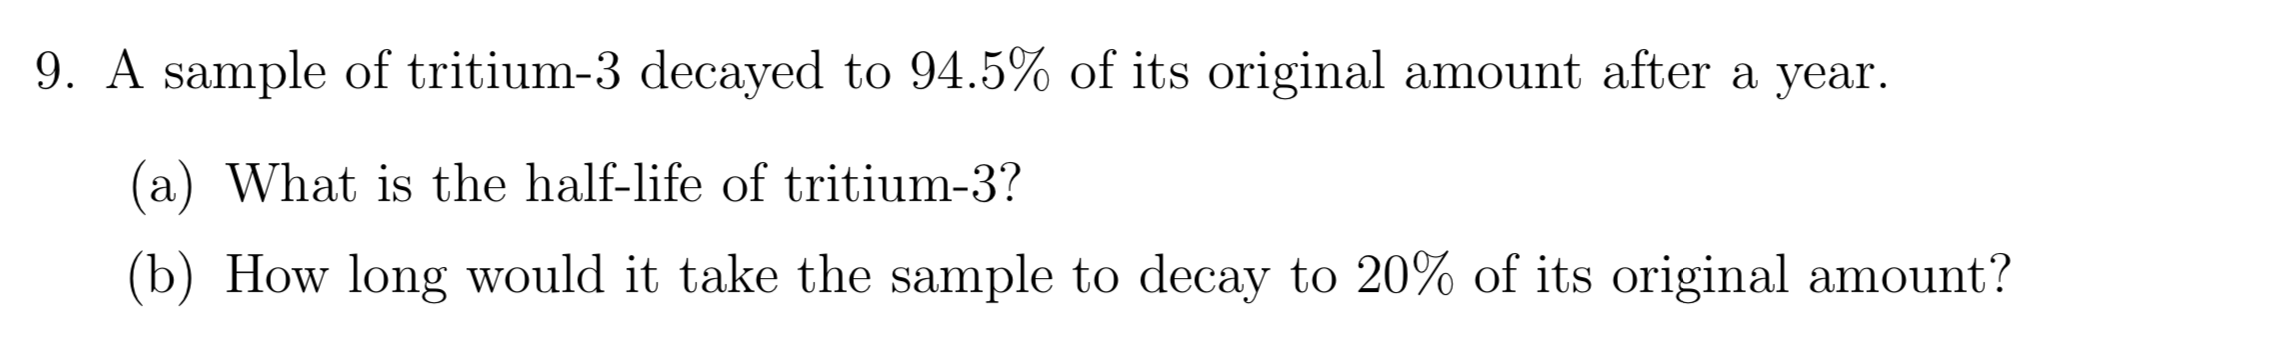 9. A sample of tritium-3 decayed to 94.5% of its original amount after a year (a) What is the half-life of tritium-3? (b) How long would it take the sample to decay to 20% of its original amount?